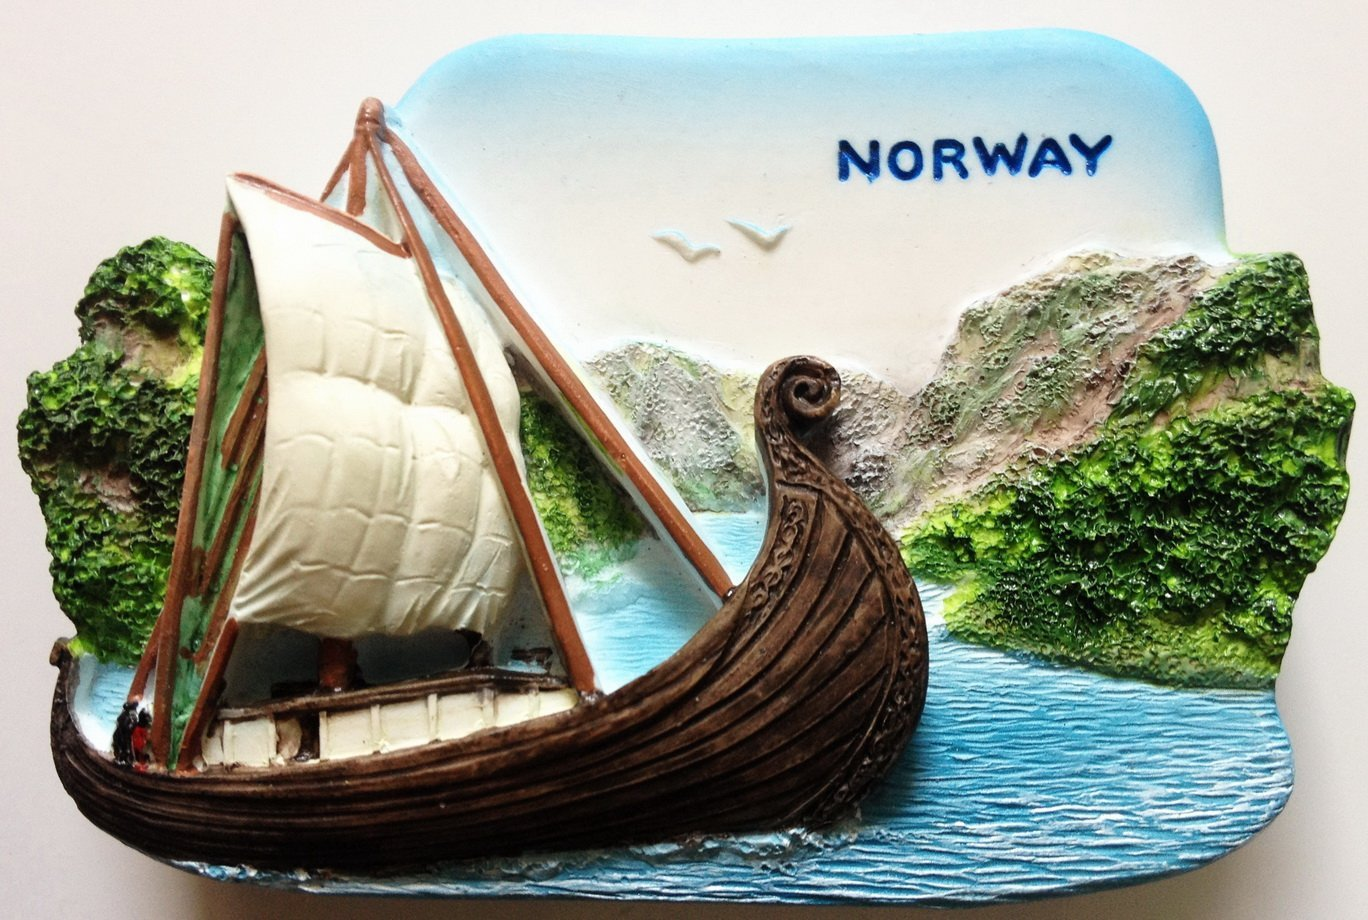 Viking Ship NORWAY High Quality Resin 3D fridge magnet